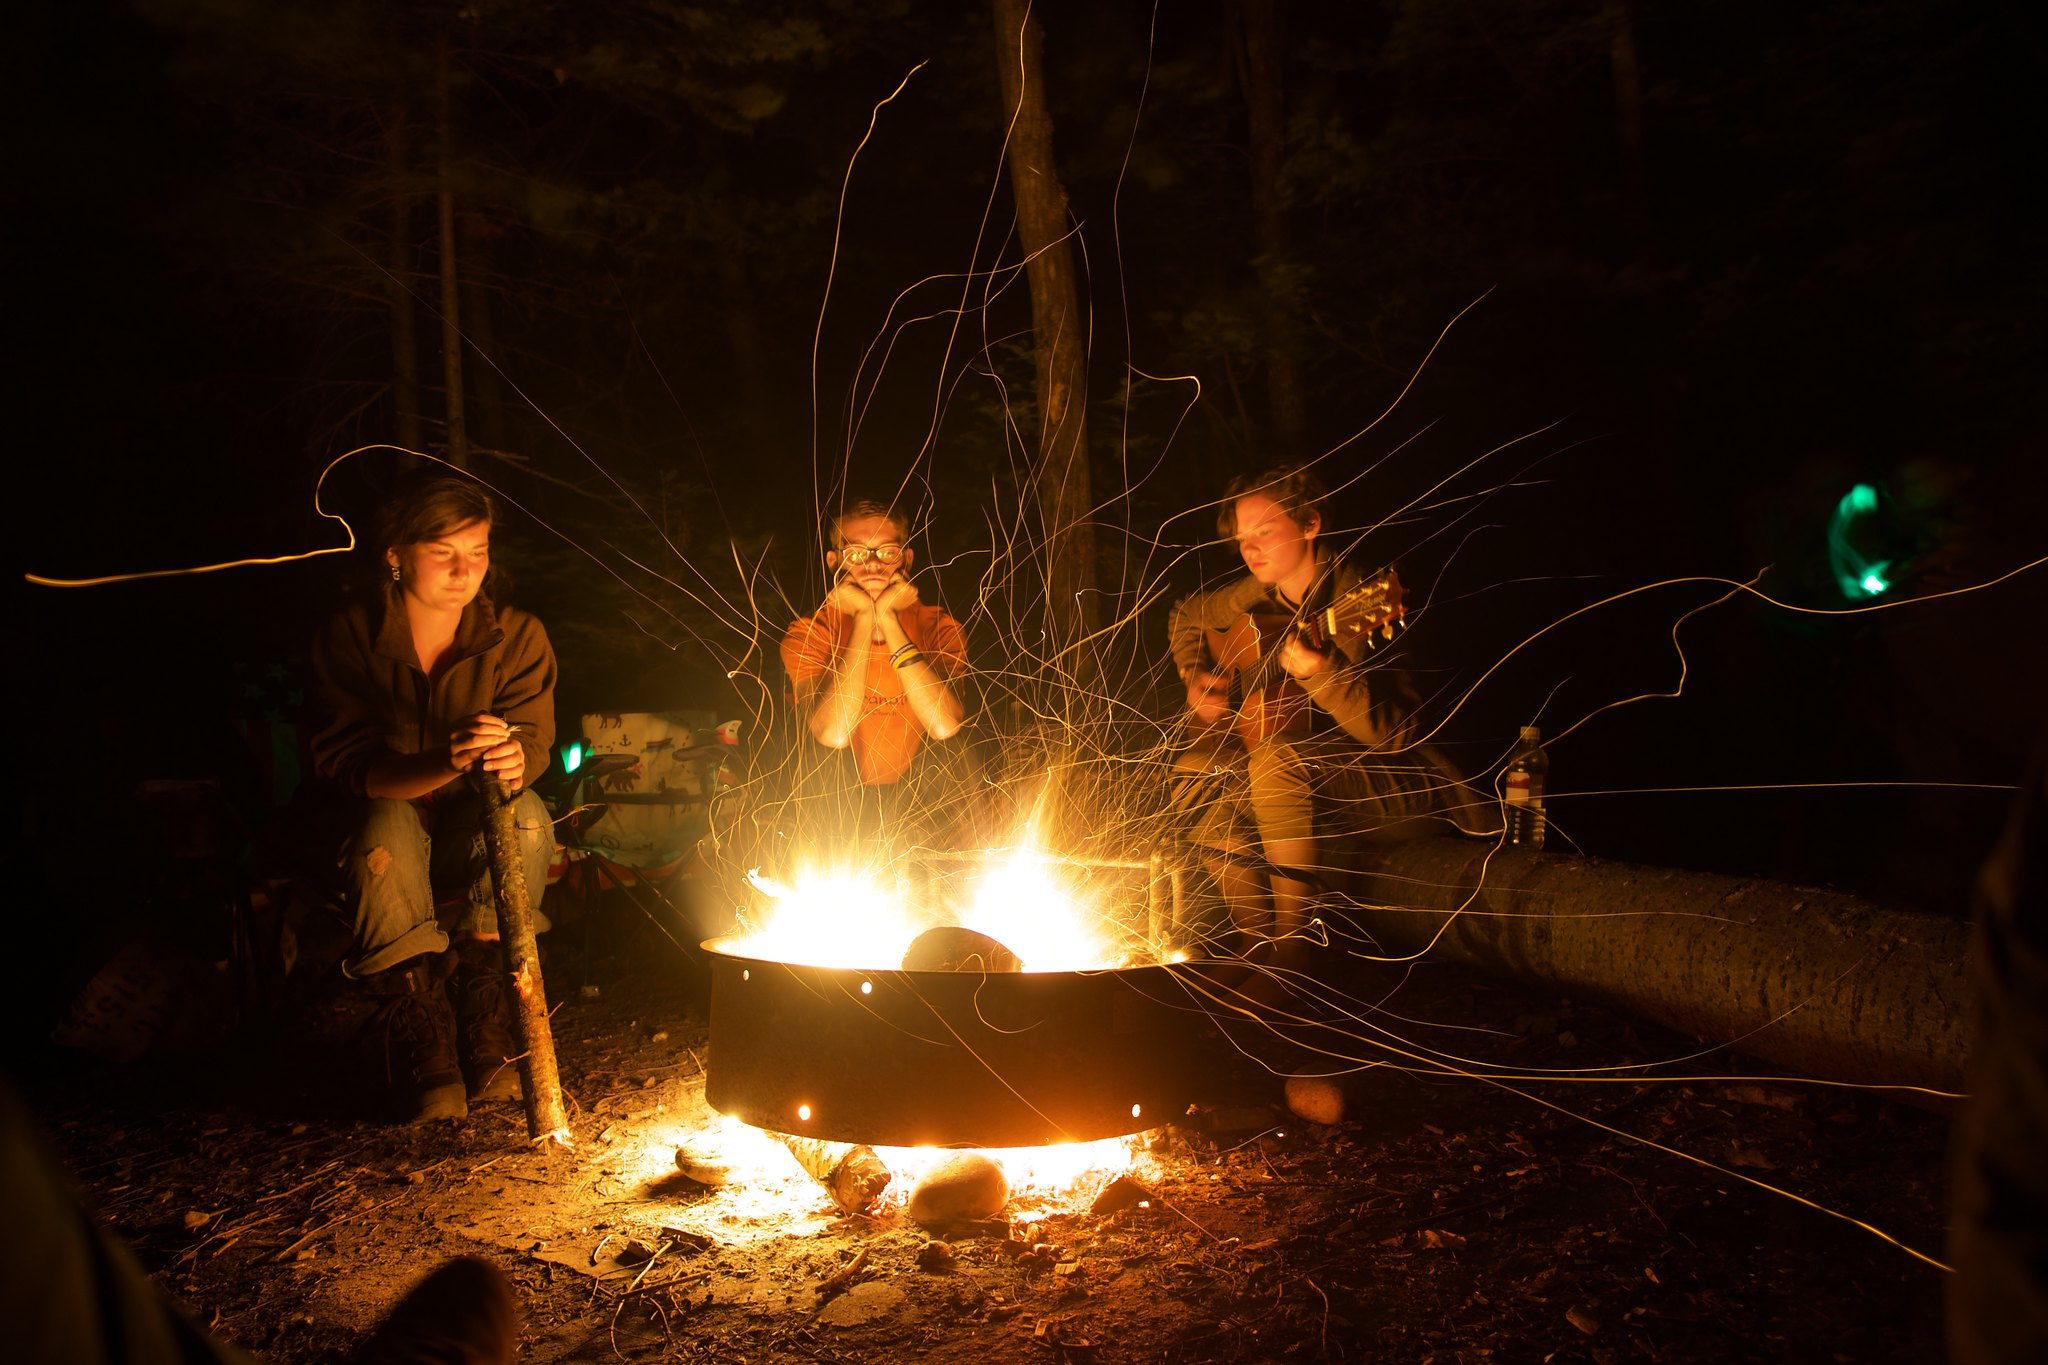 Three people gathered around a campfire.